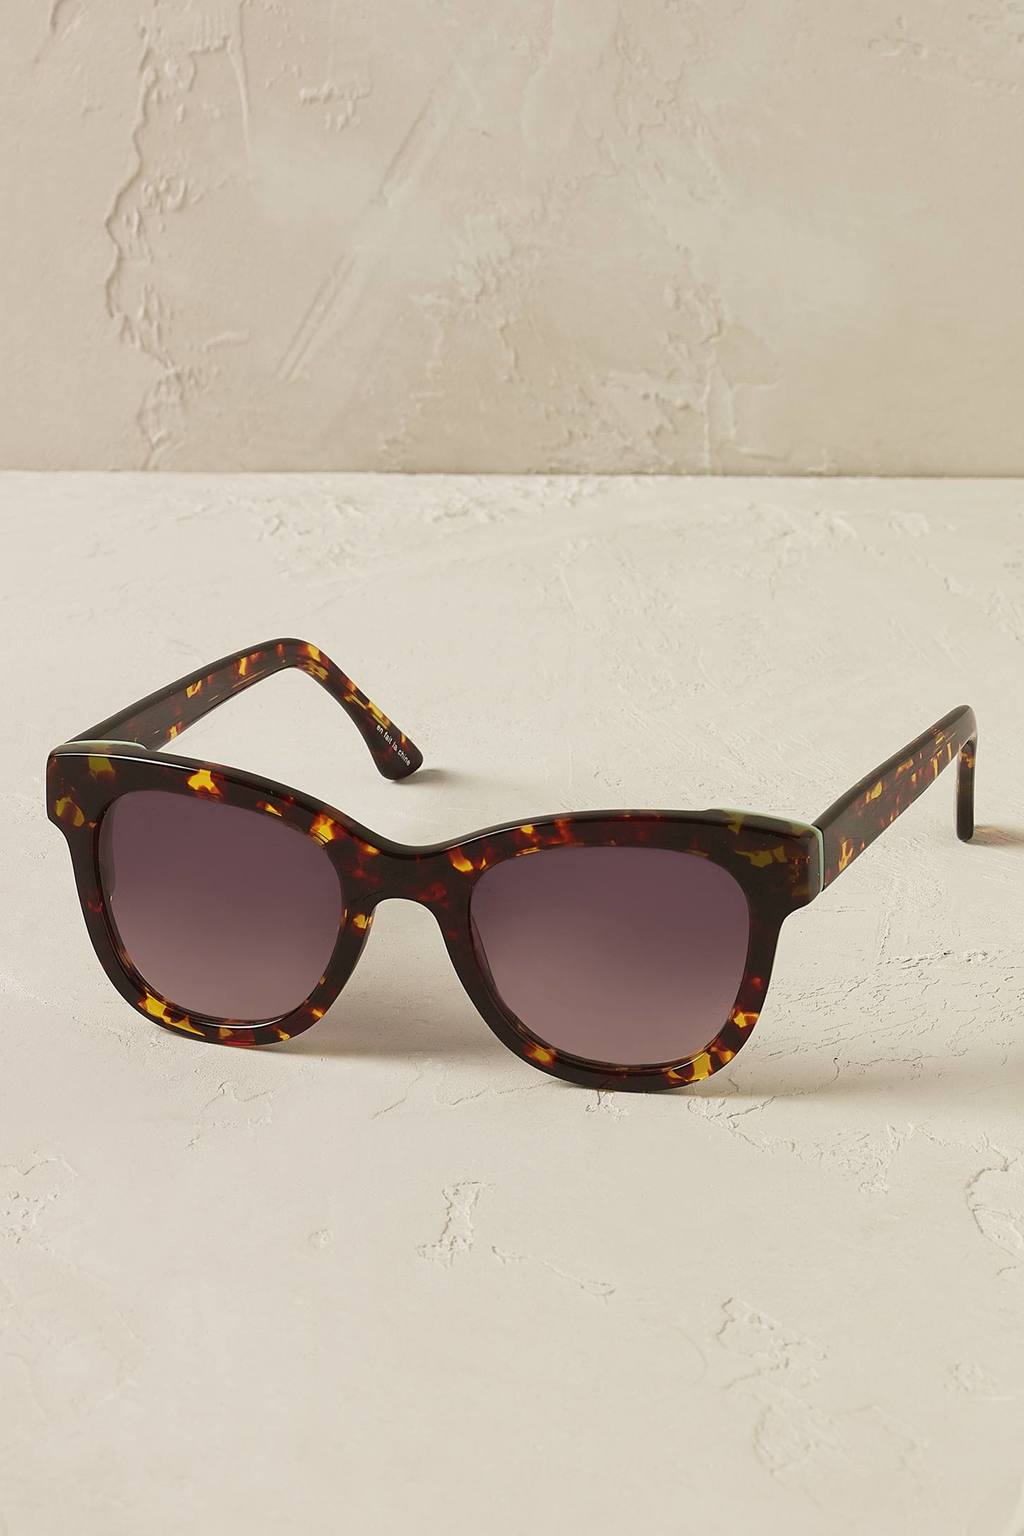 Minted Wayfarer Sunglasses - predominant colour: chocolate brown; occasions: casual, holiday; style: cateye; size: large; material: plastic/rubber; pattern: tortoiseshell; finish: plain; season: s/s 2016